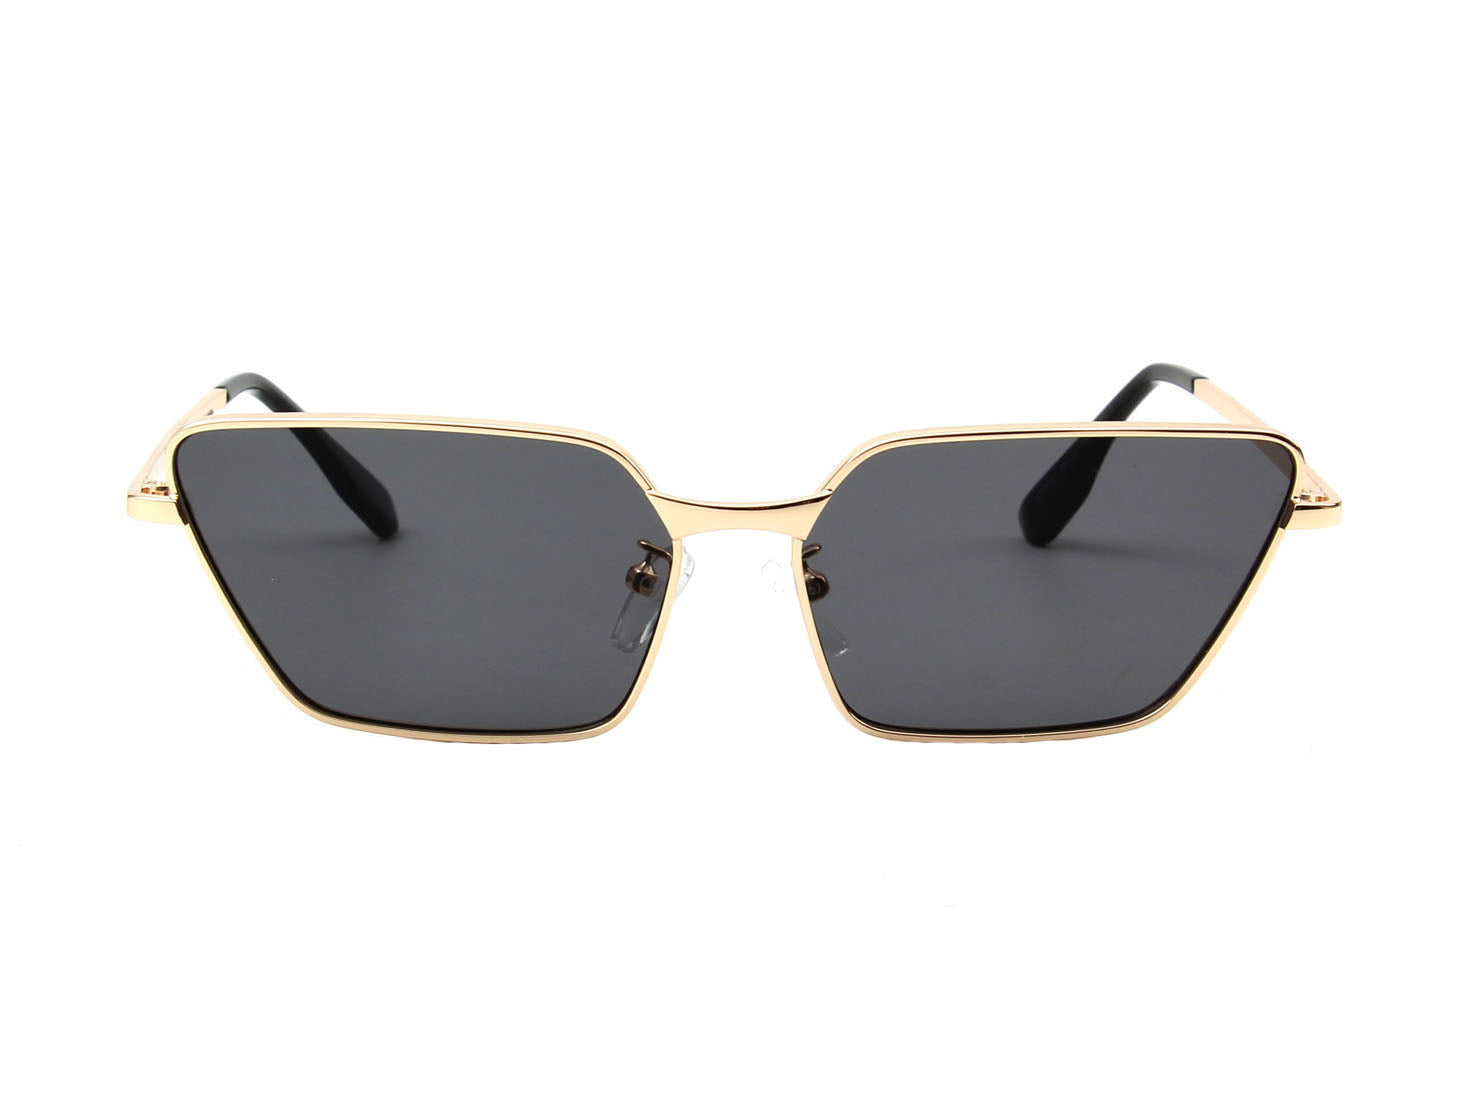 J2004 - Women Rectangle High Pointed Cat Eye Fashion Sunglasses